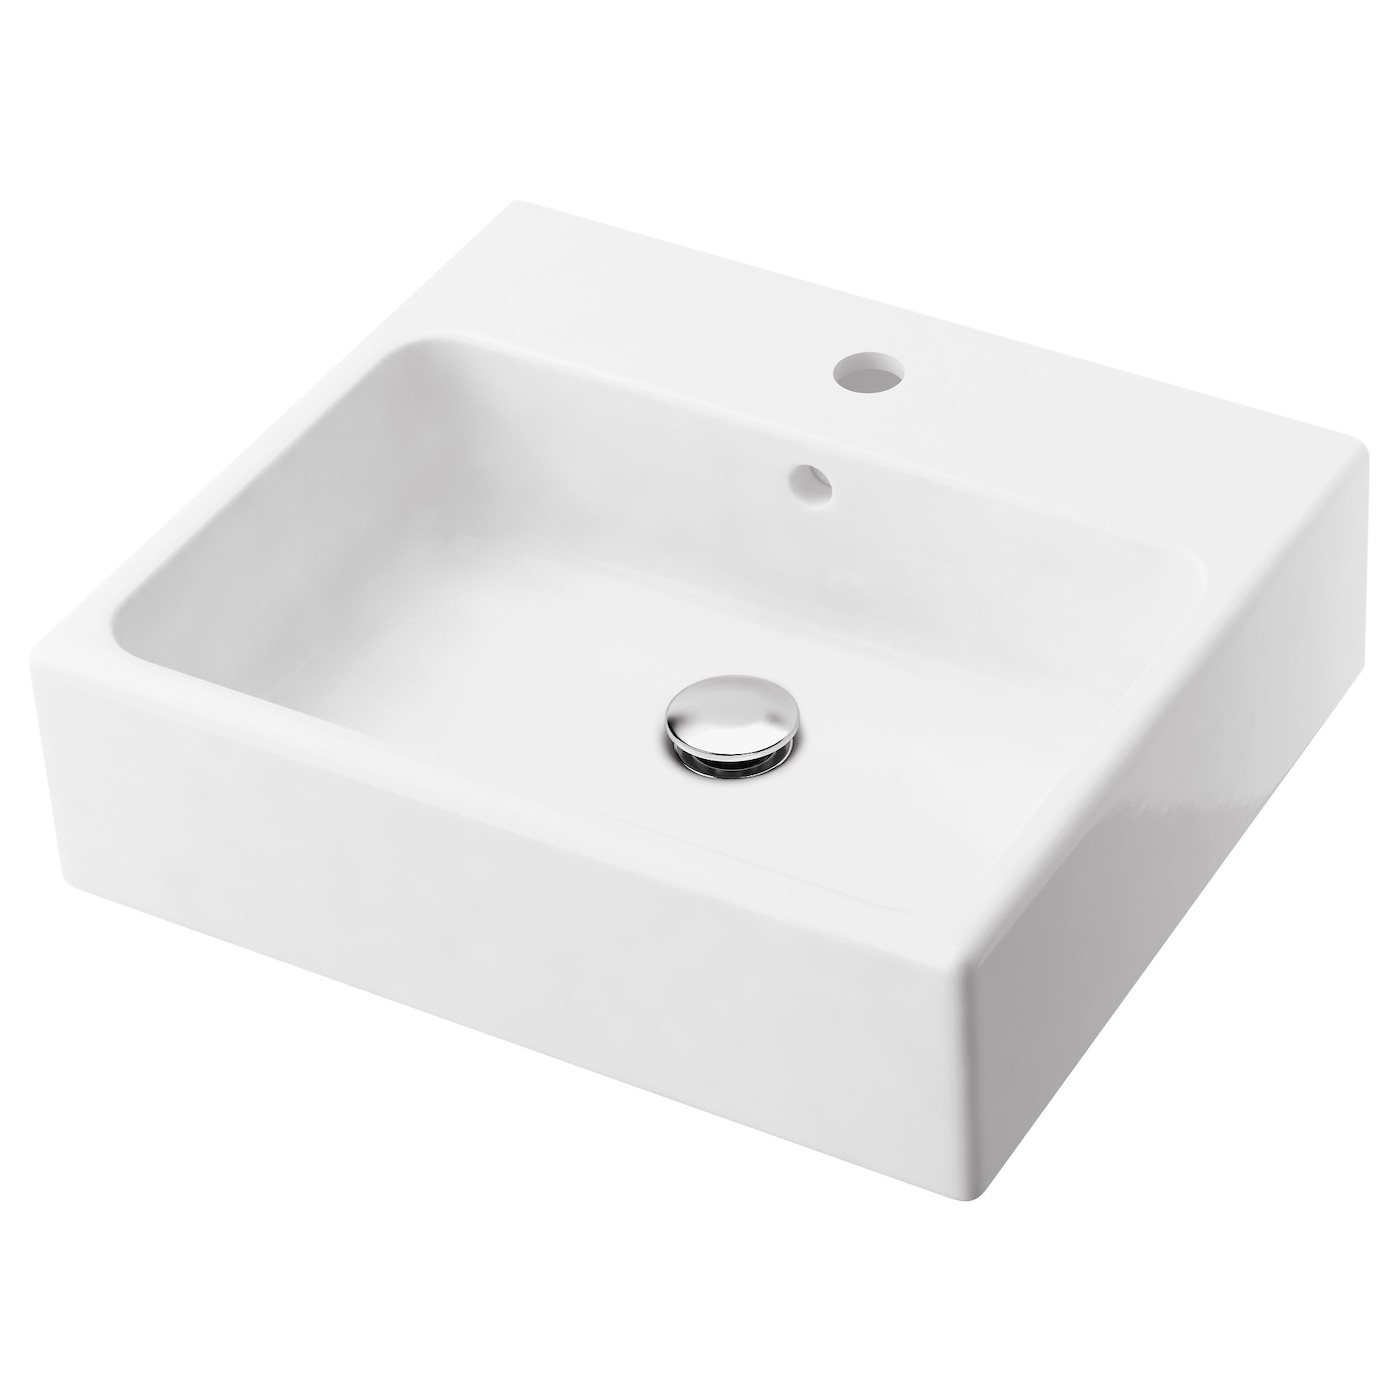 Yddingen single wash basin white 45 cm ikea for Bathroom cabinets 40cm wide